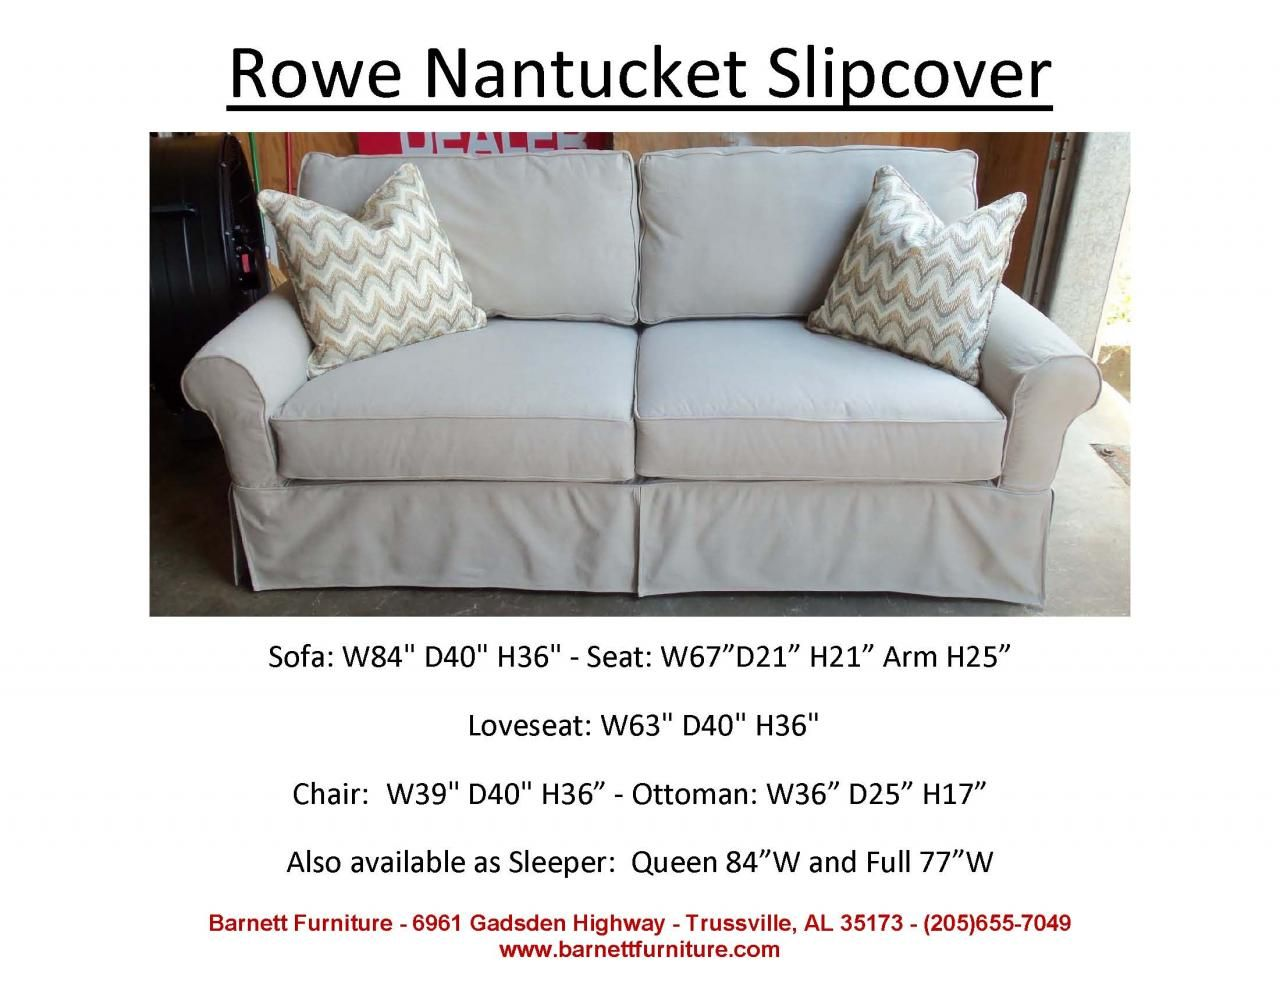 Rowe Nantucket Slipcover 2 Cushion Sofa You Choose The Fabric